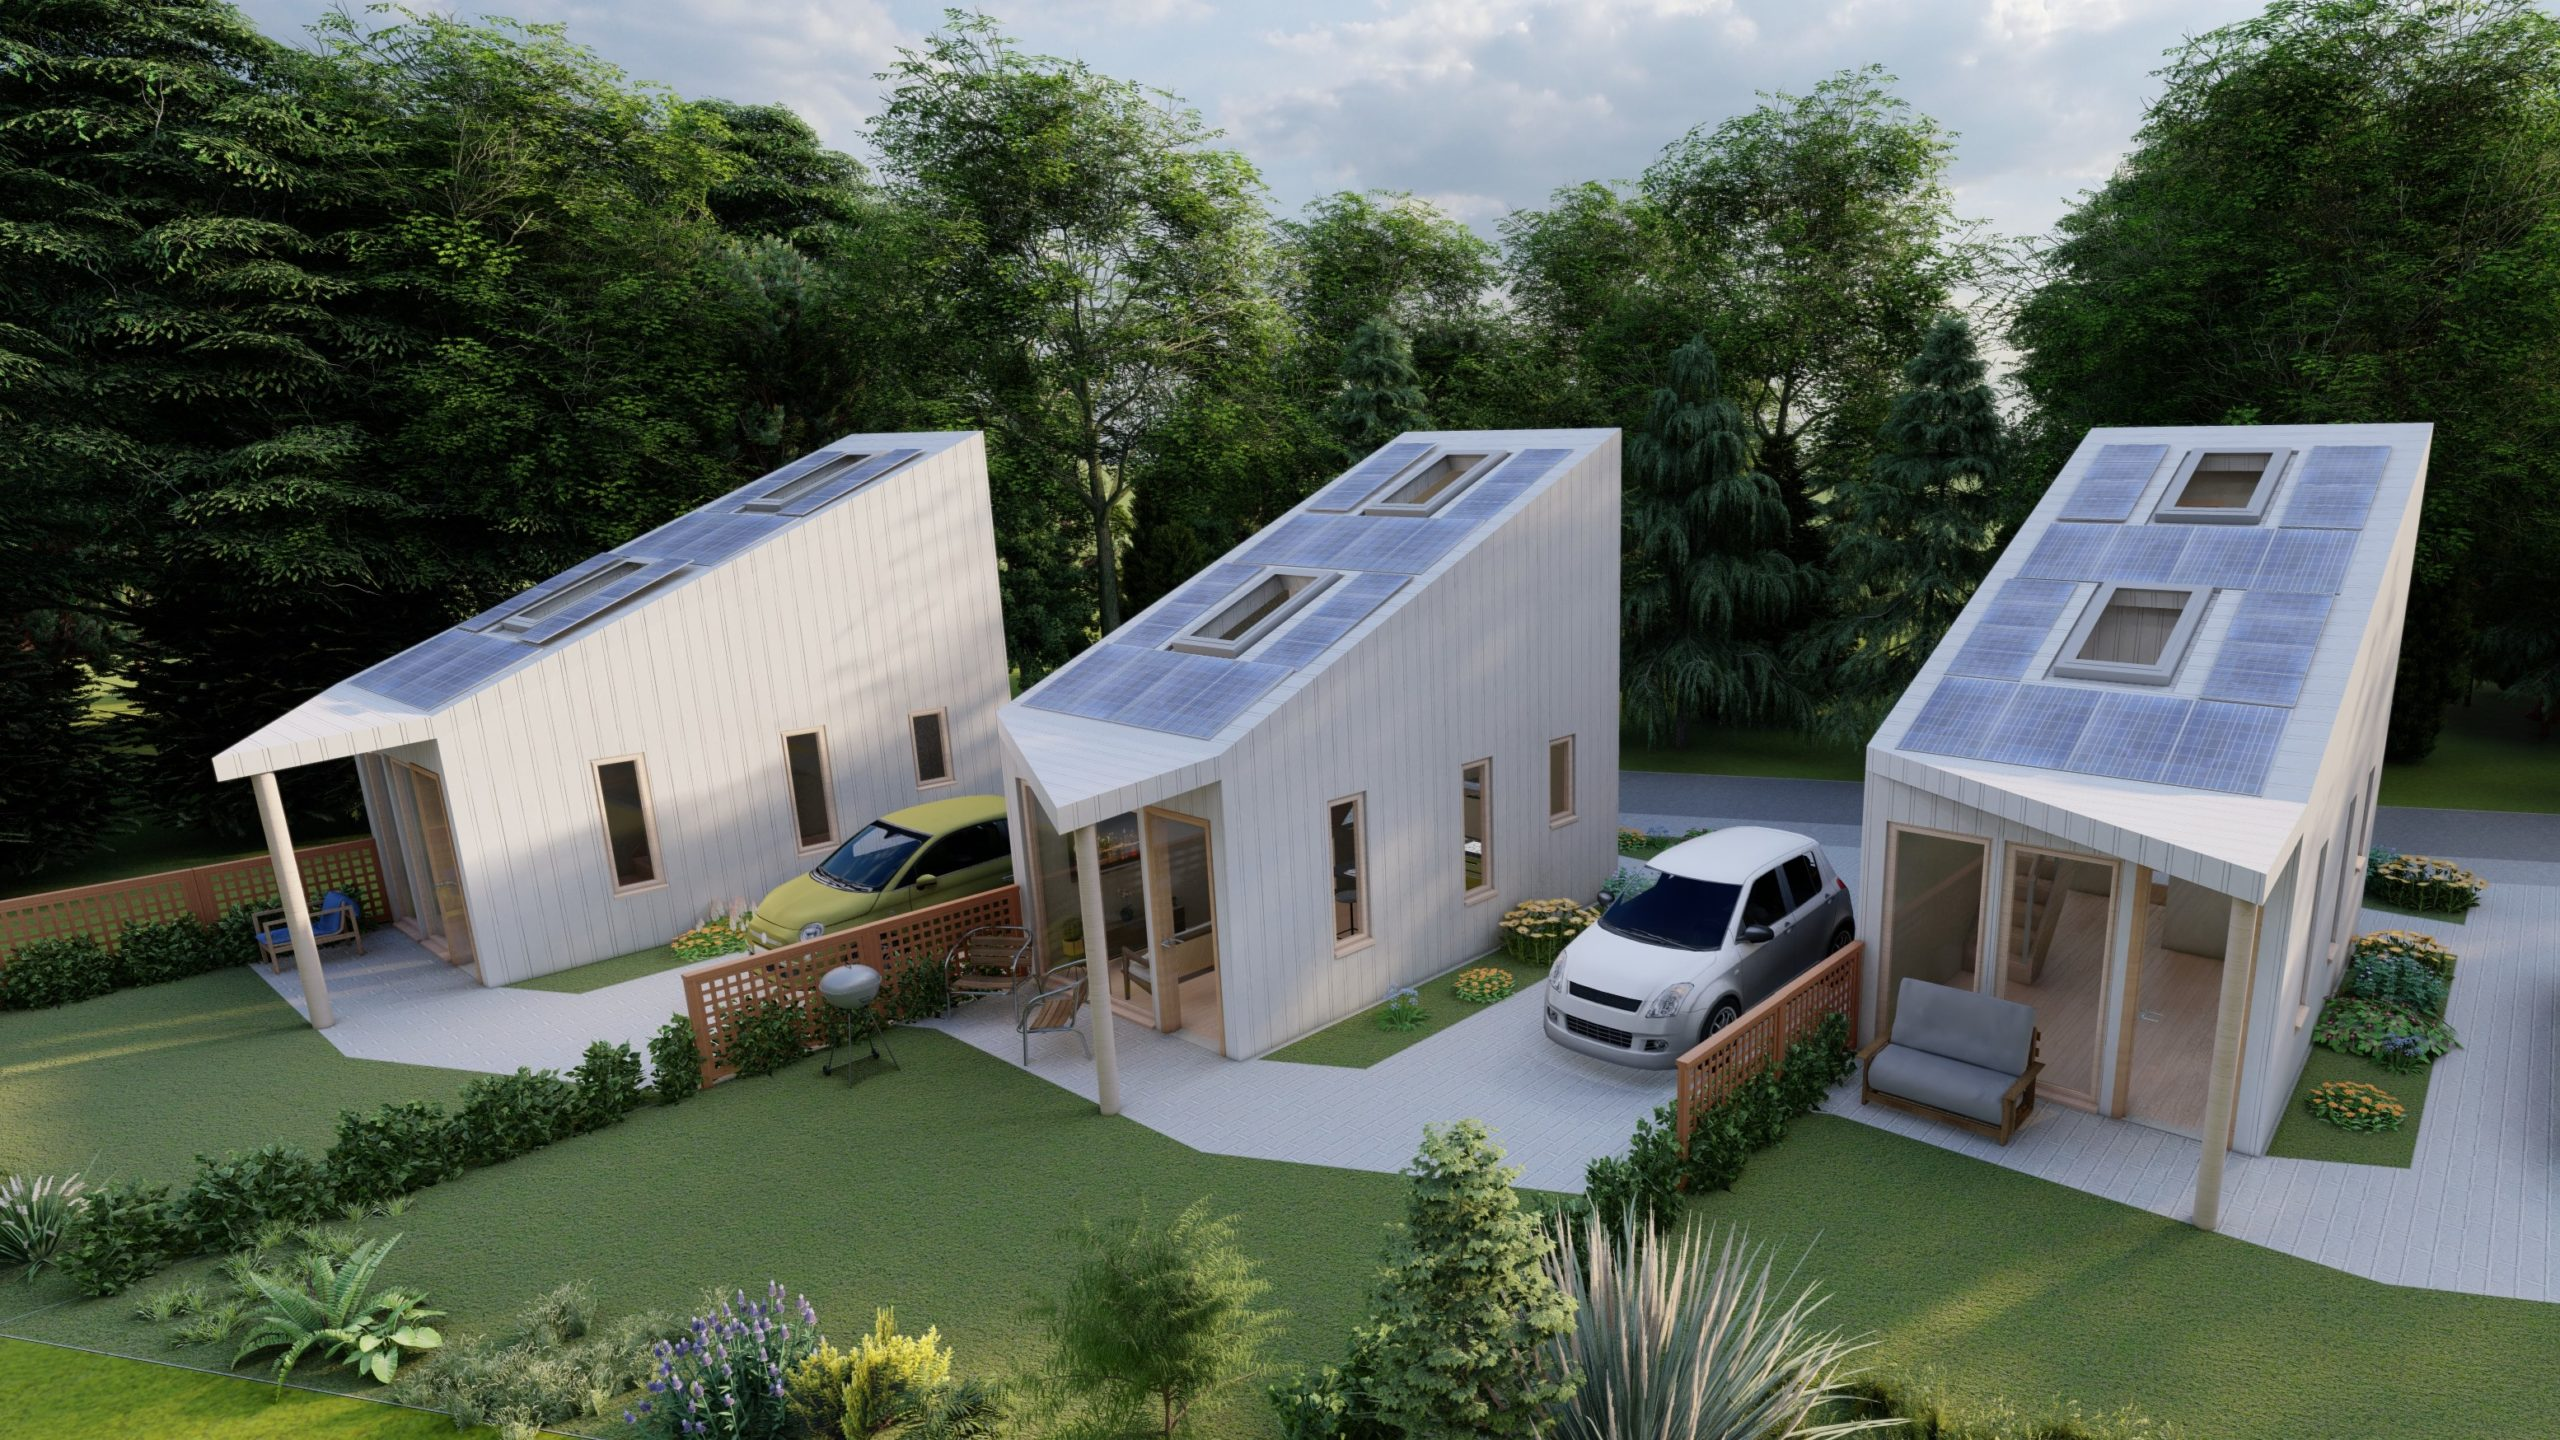 The GUCA homes, one of the entries in the design competition